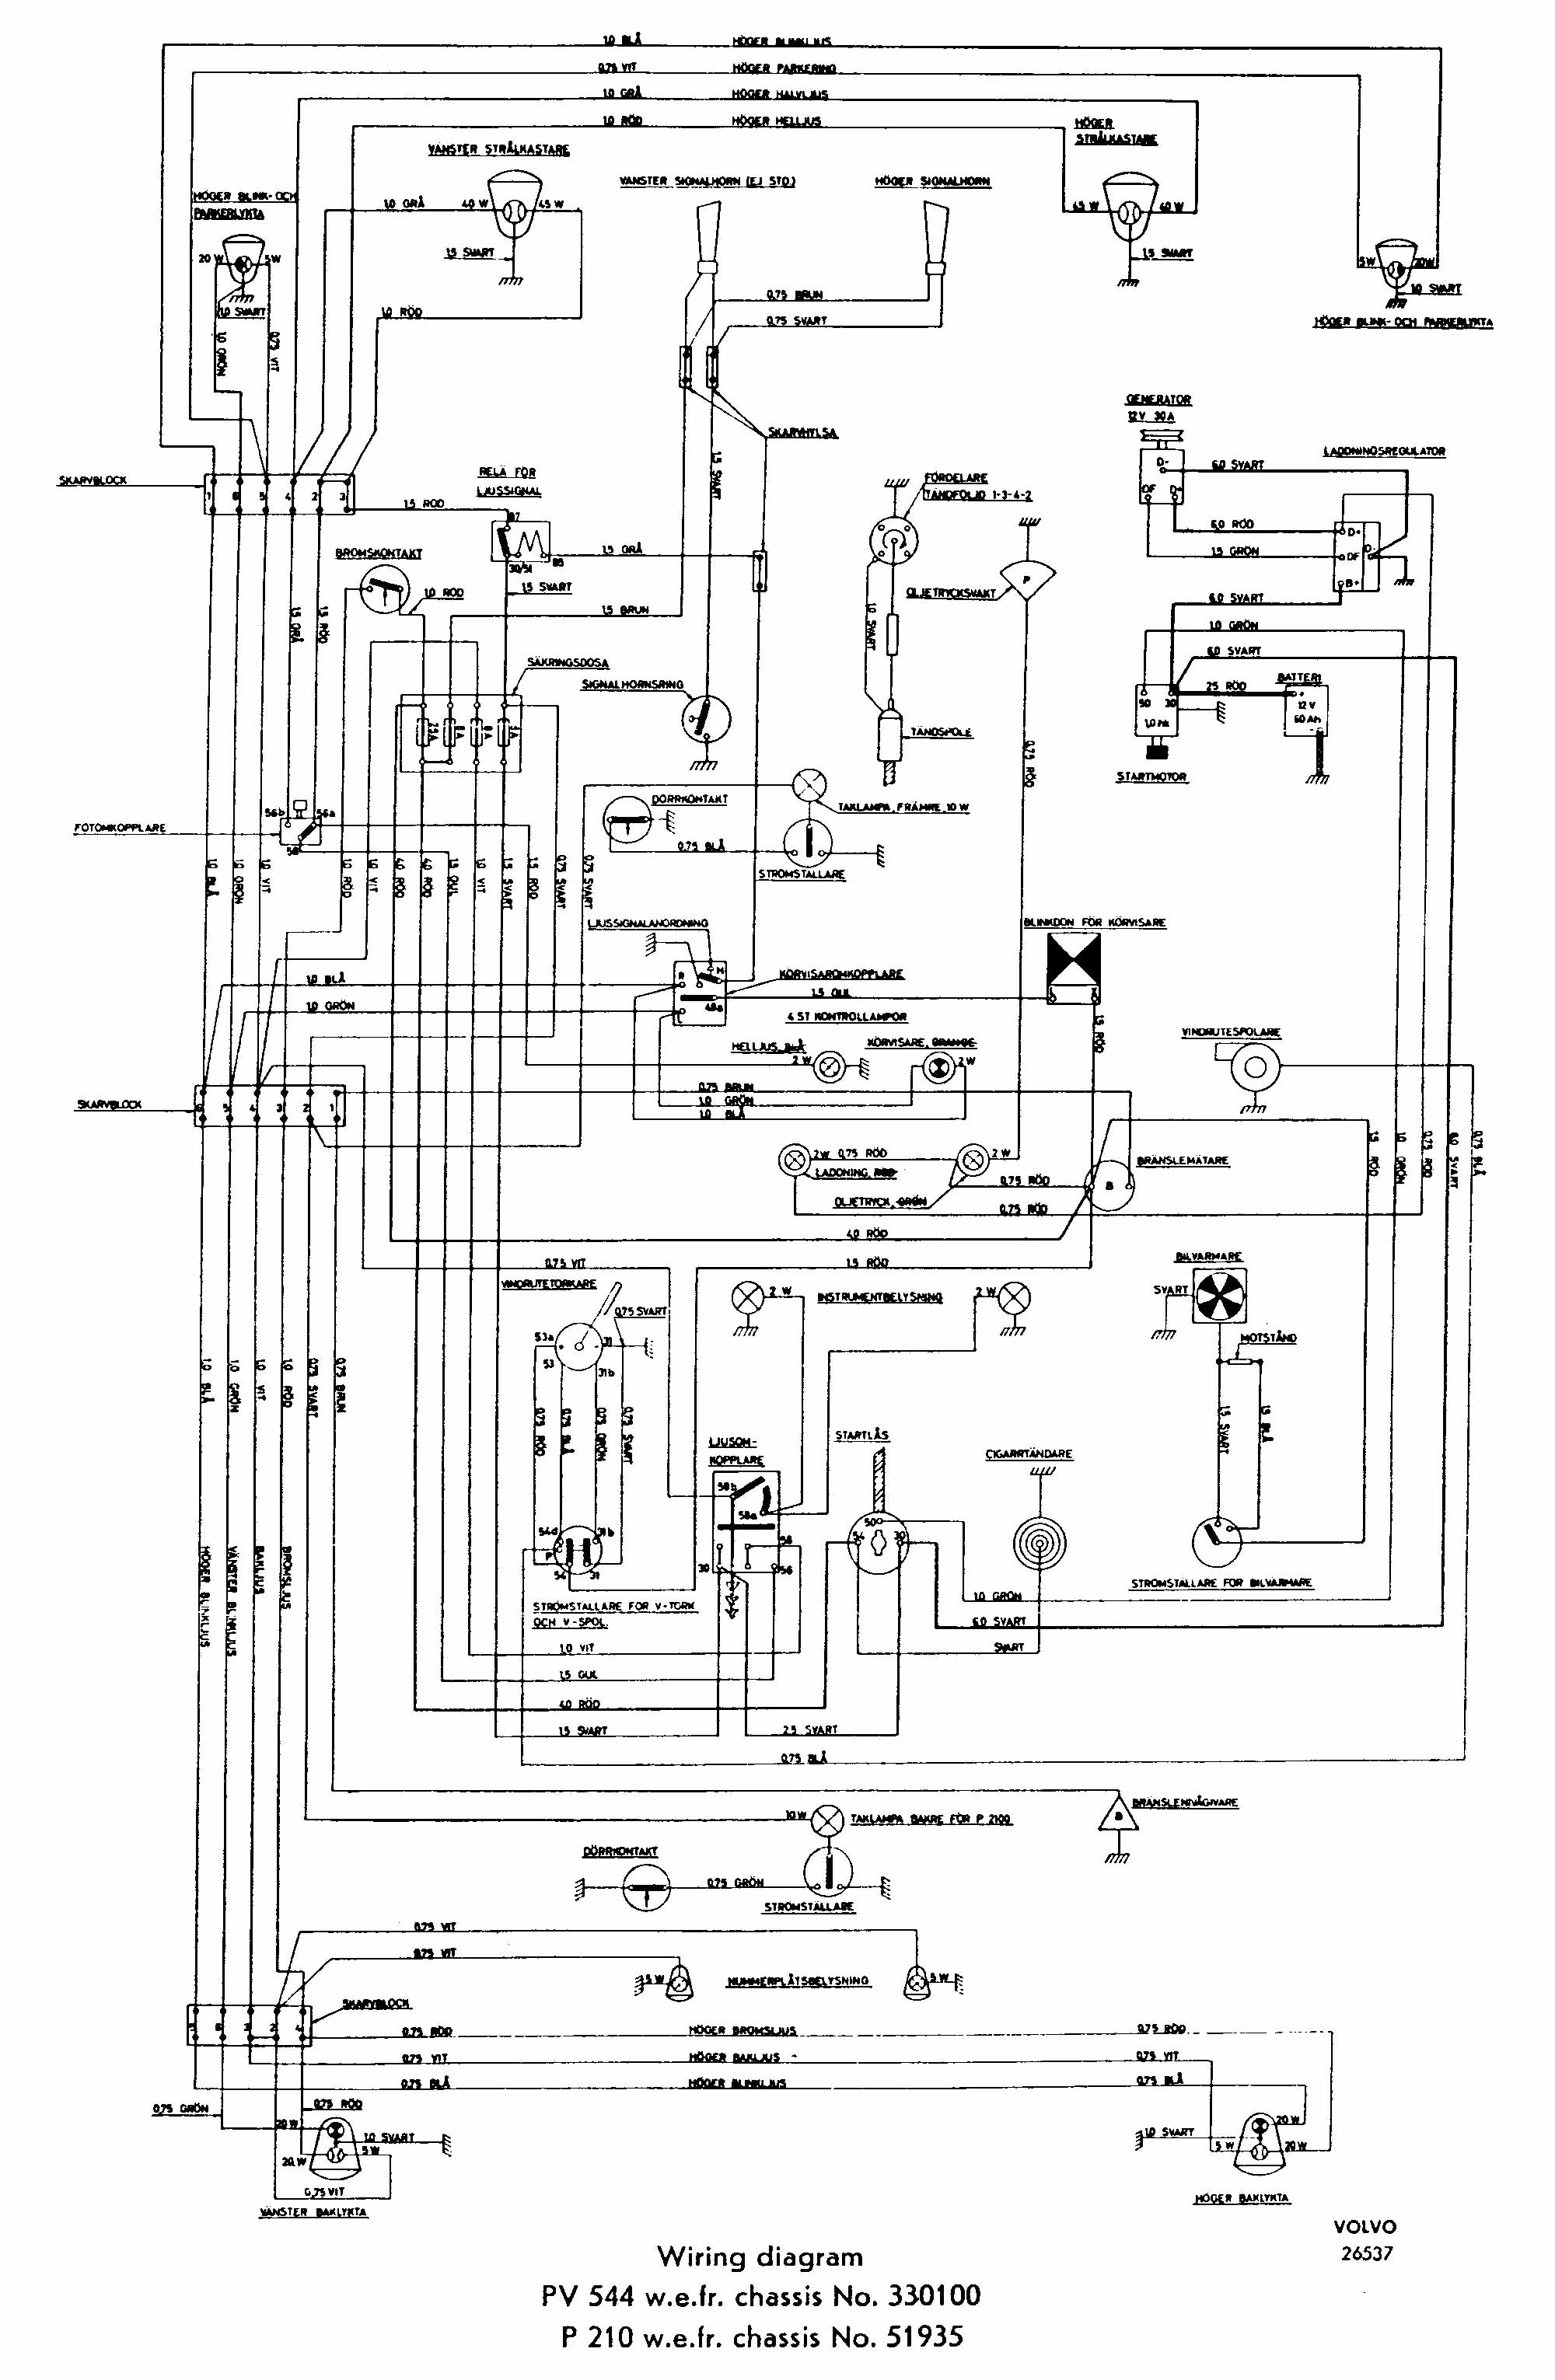 extract from 12v 544 wiring diagram, showing wiper related